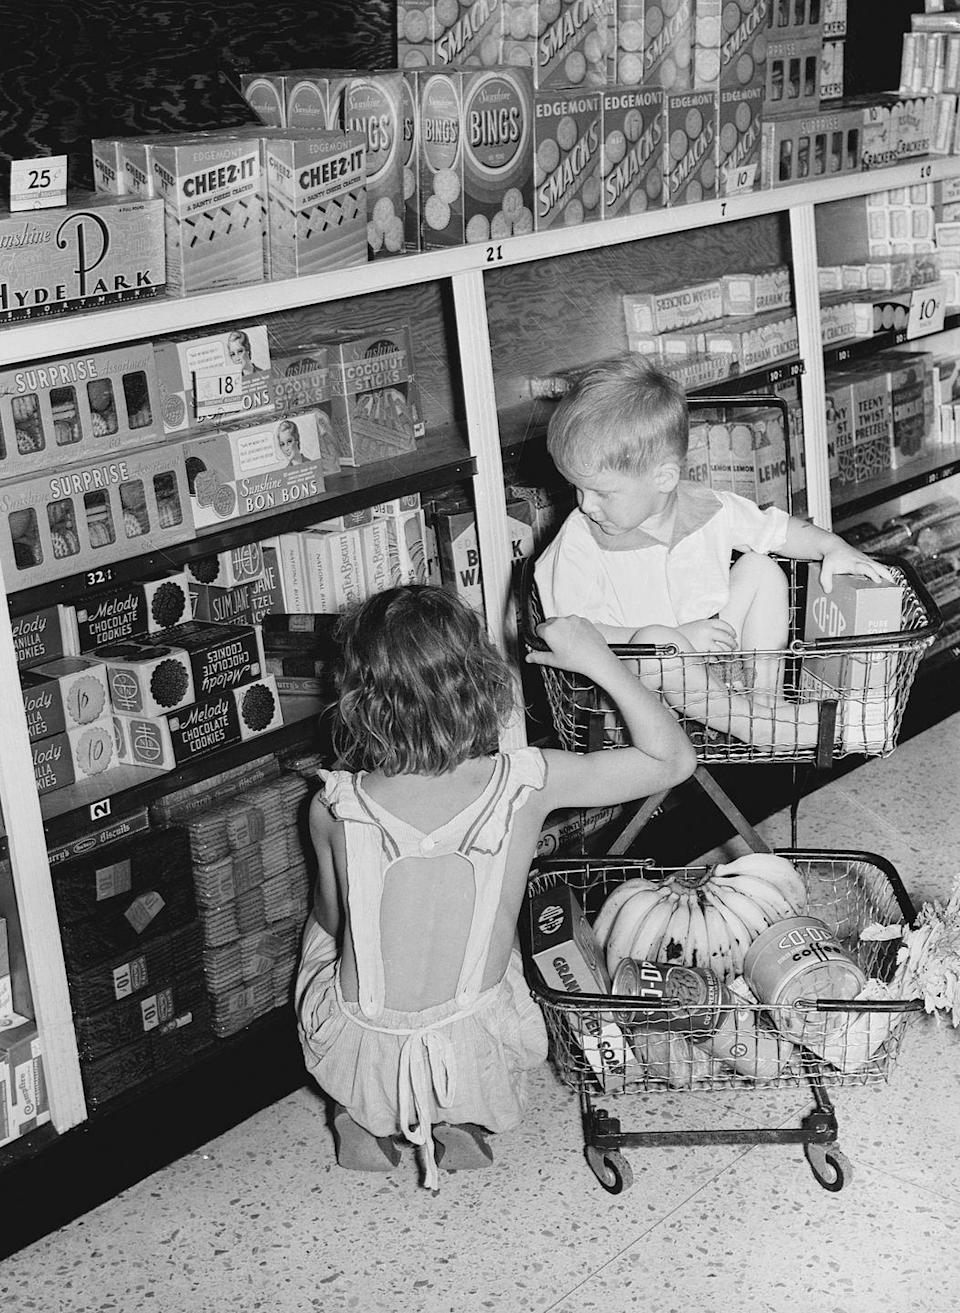 """<p>Grocery carts <a href=""""https://www.cbsnews.com/news/almanac-the-first-shopping-cart/"""" rel=""""nofollow noopener"""" target=""""_blank"""" data-ylk=""""slk:were first introduced"""" class=""""link rapid-noclick-resp"""">were first introduced</a> into the world in 1936. The handy invention was thought up by Sylvan Goldman, an Oklahoma businessman and inventor. The first line of shopping carts rolled out at Goldman's Humpty Dumpty supermarket chain, and the rest, as they say, is history.</p>"""